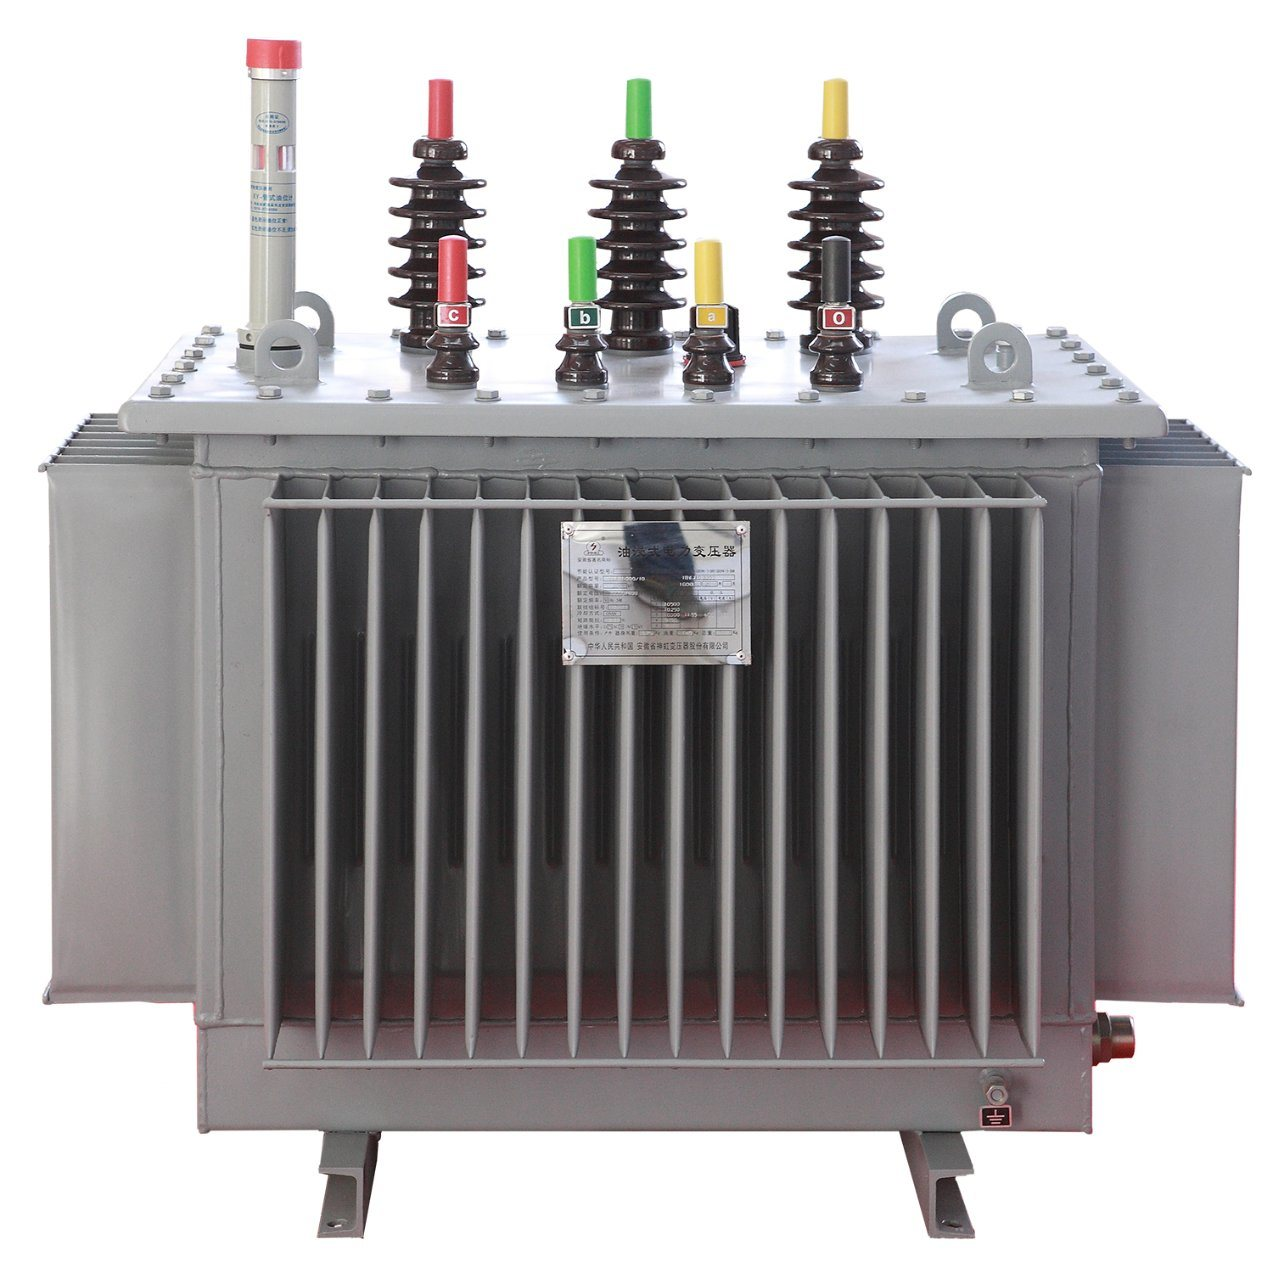 S11 Three Phase Double-Winding Series Oil Immersed Electric Power Transformer